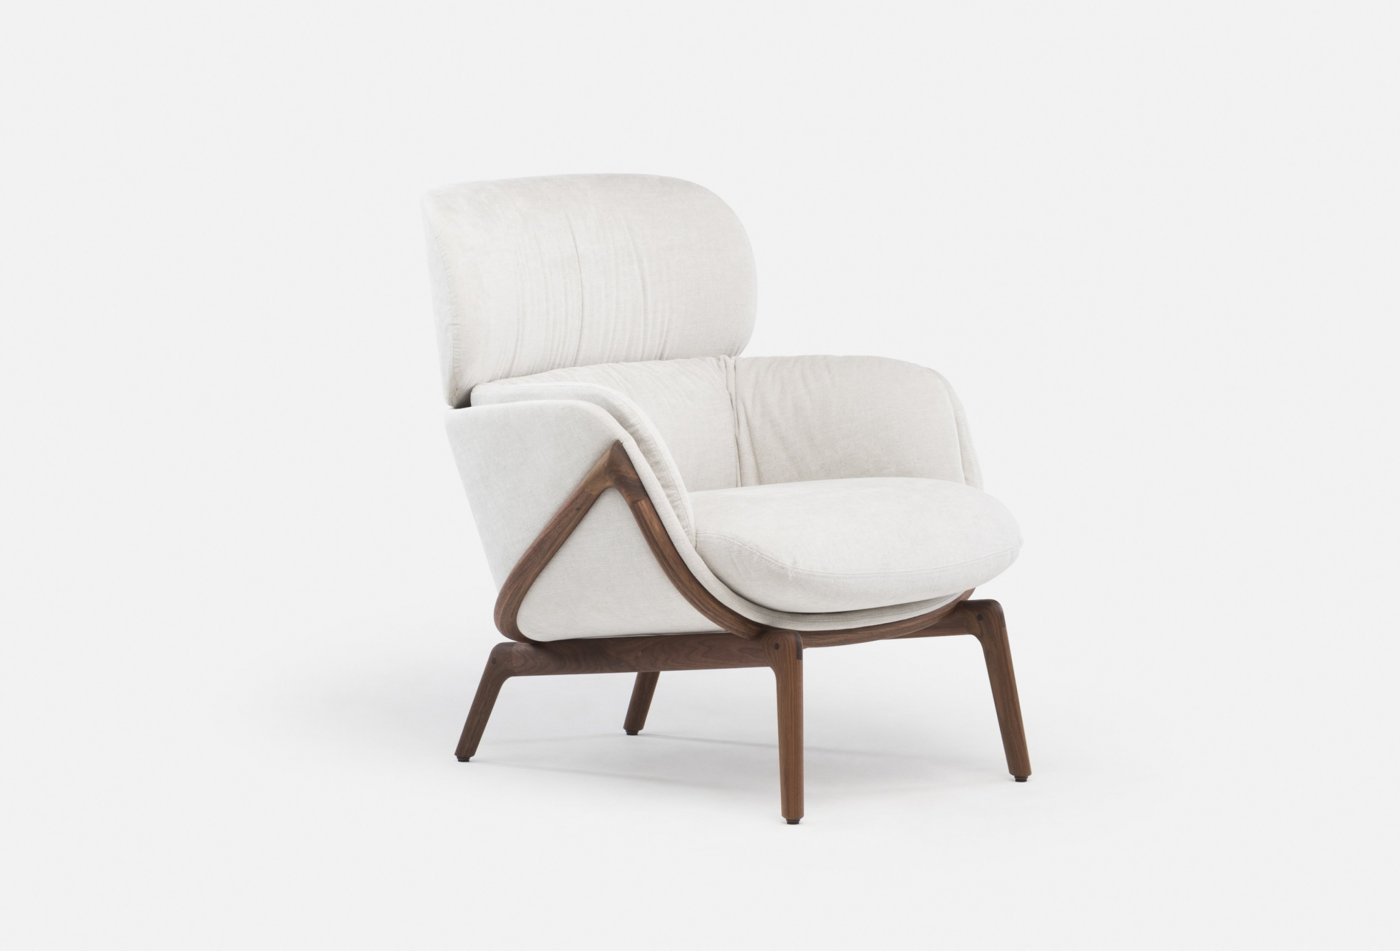 Elysia_Lounge_Chair_by_Nichetto_in_walnut_and_Maple_102_fabricweb_1400x951.jpg